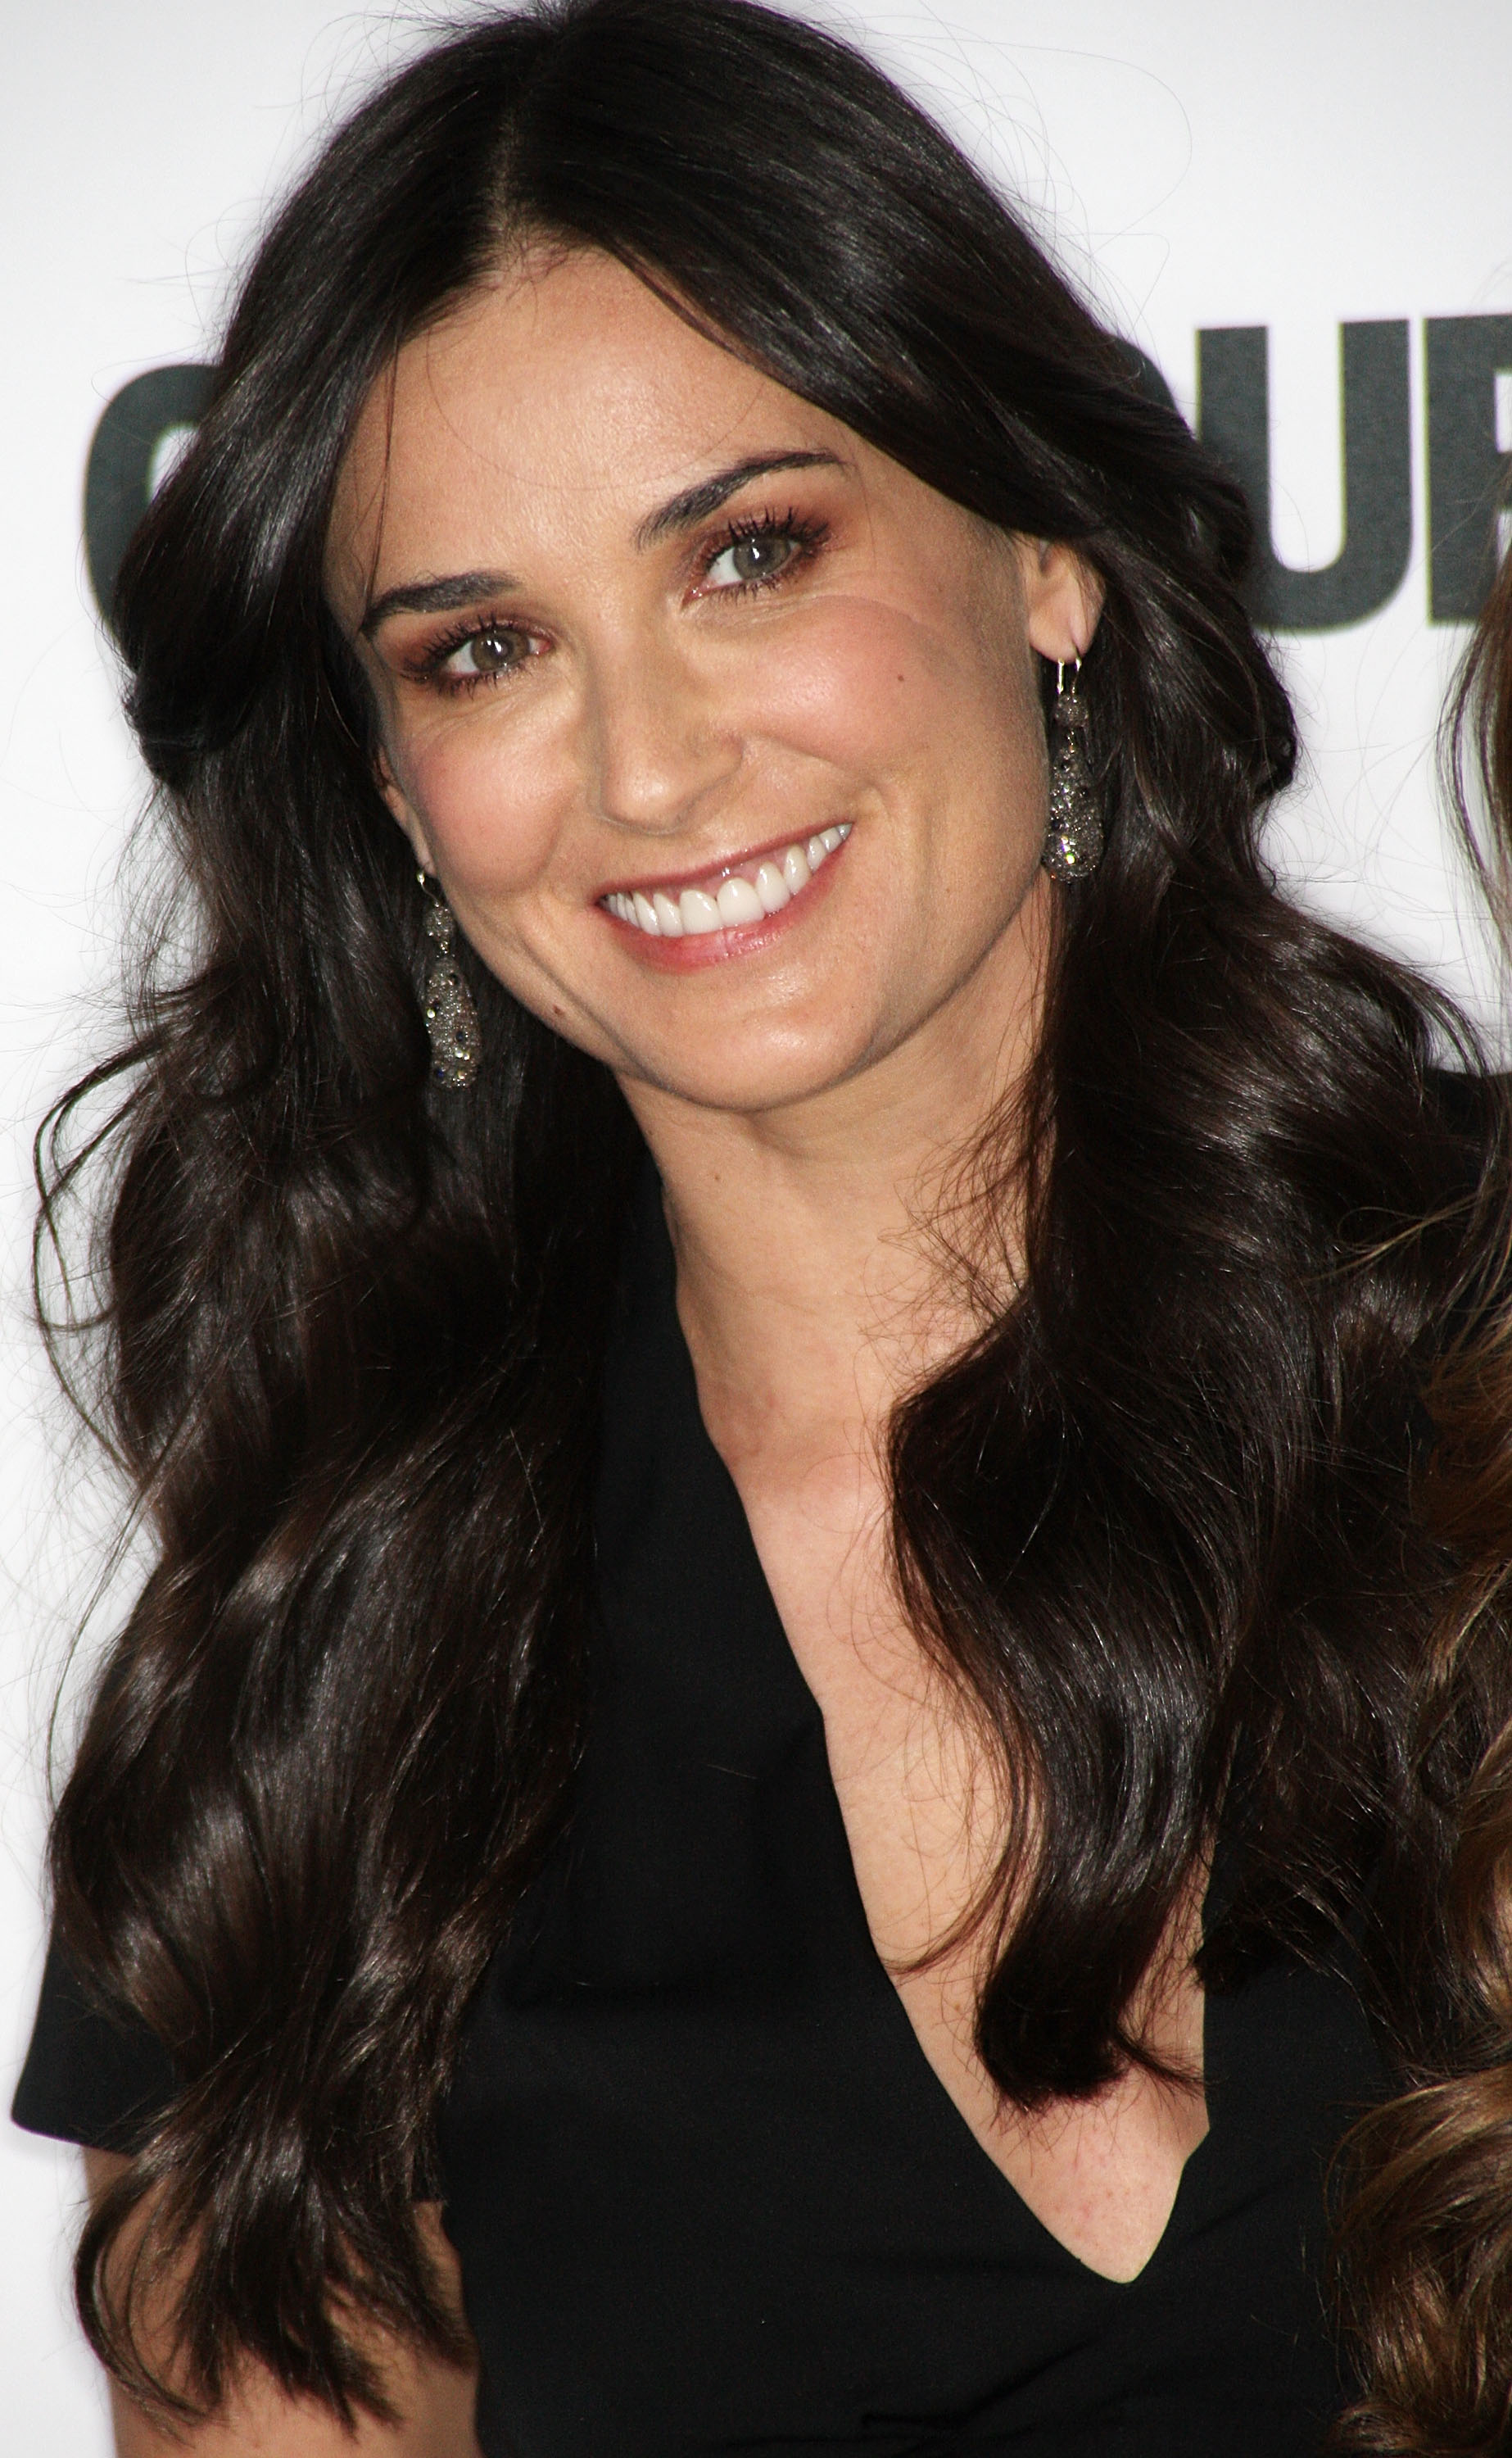 Demi Moore Attends Bruce Willis' Vow Renewal to Emma Heming